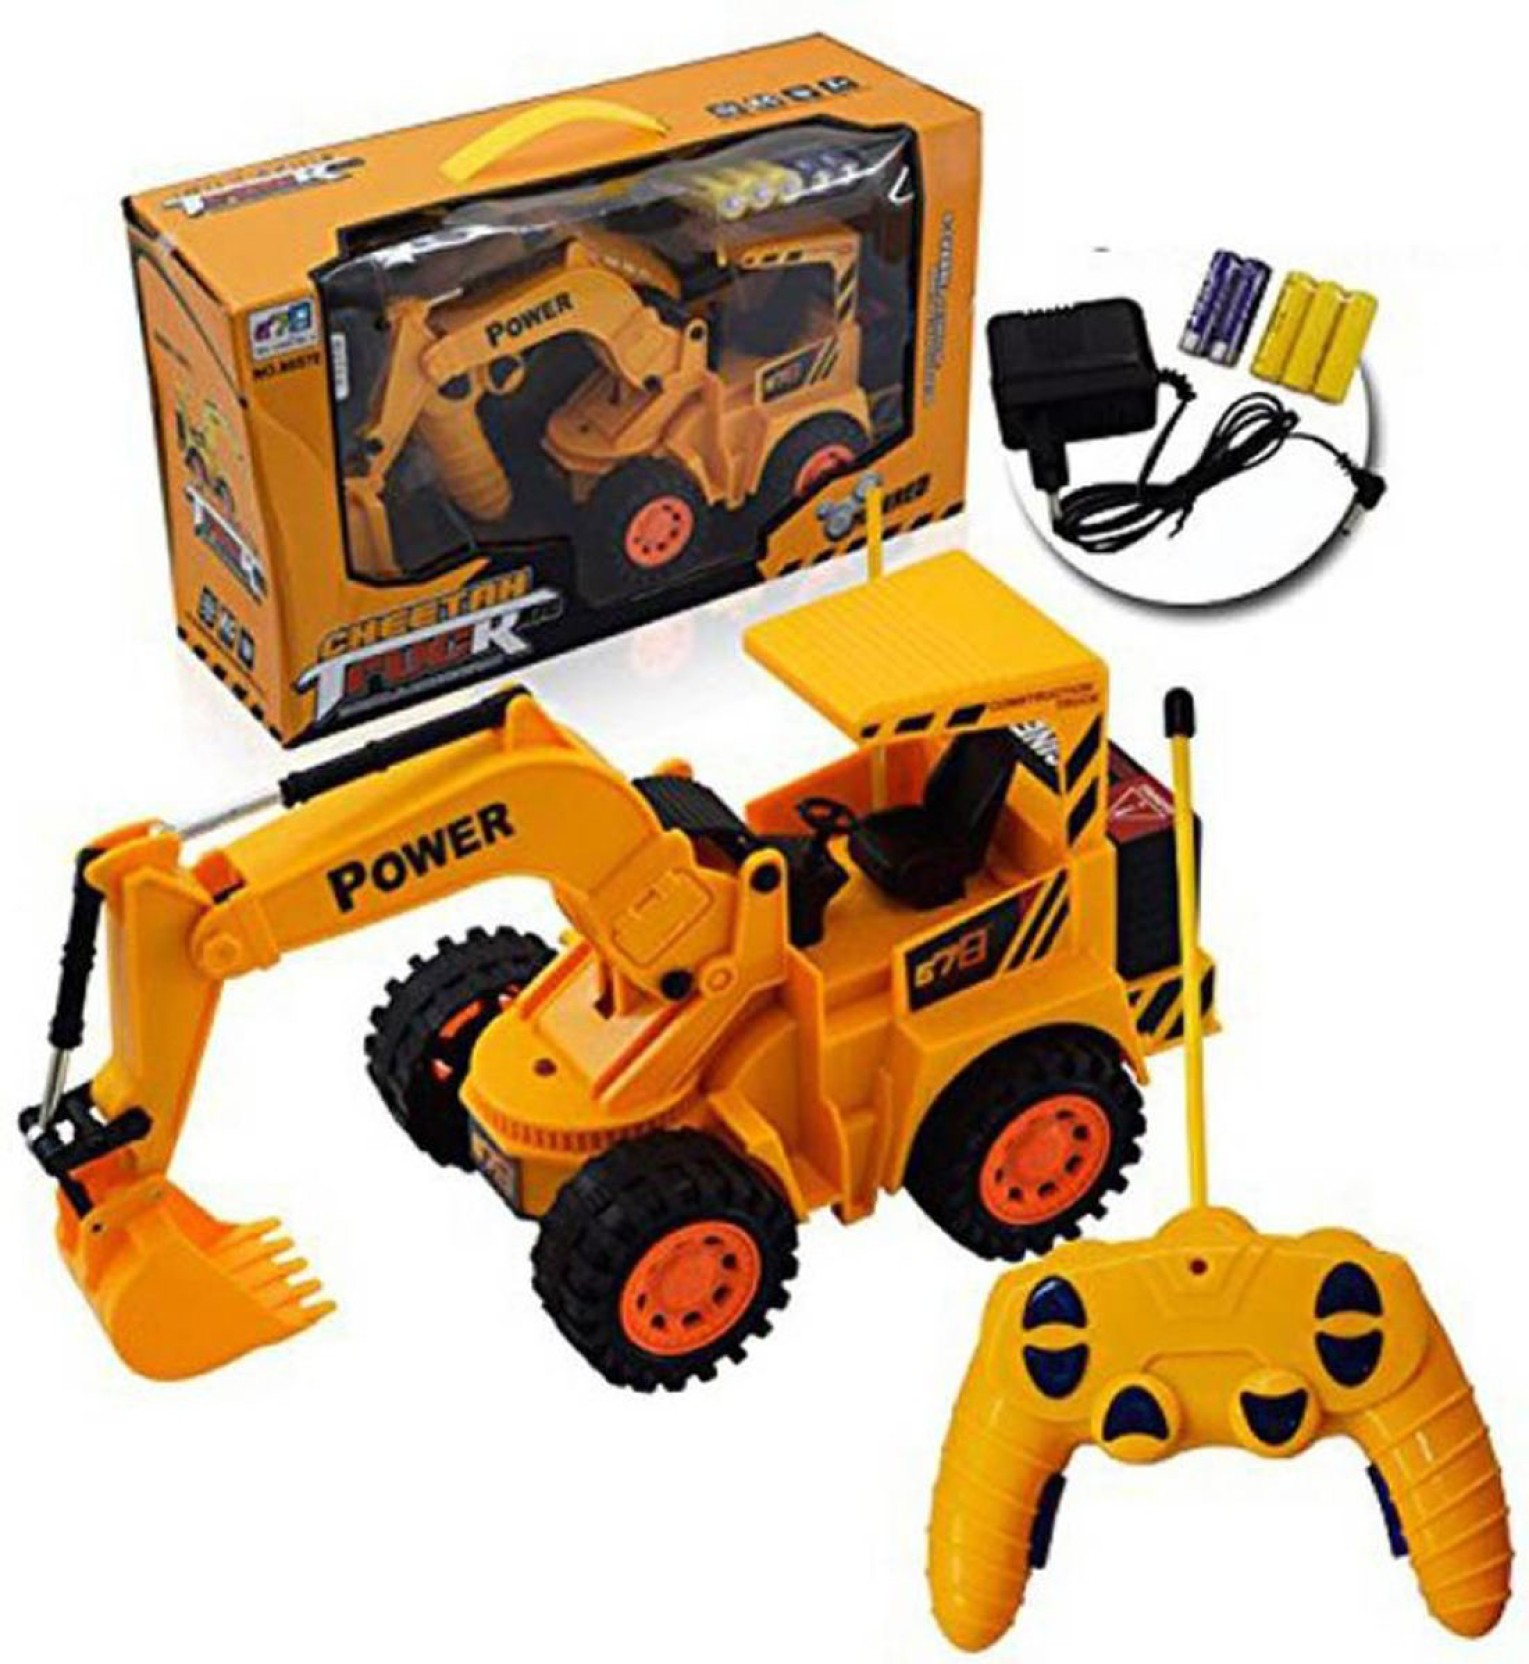 Dhawani Wireless Remote Control Rechargeable Jcb Truck 5 Channel For Lionel Trains Supero Switches No 112 Add To Cart